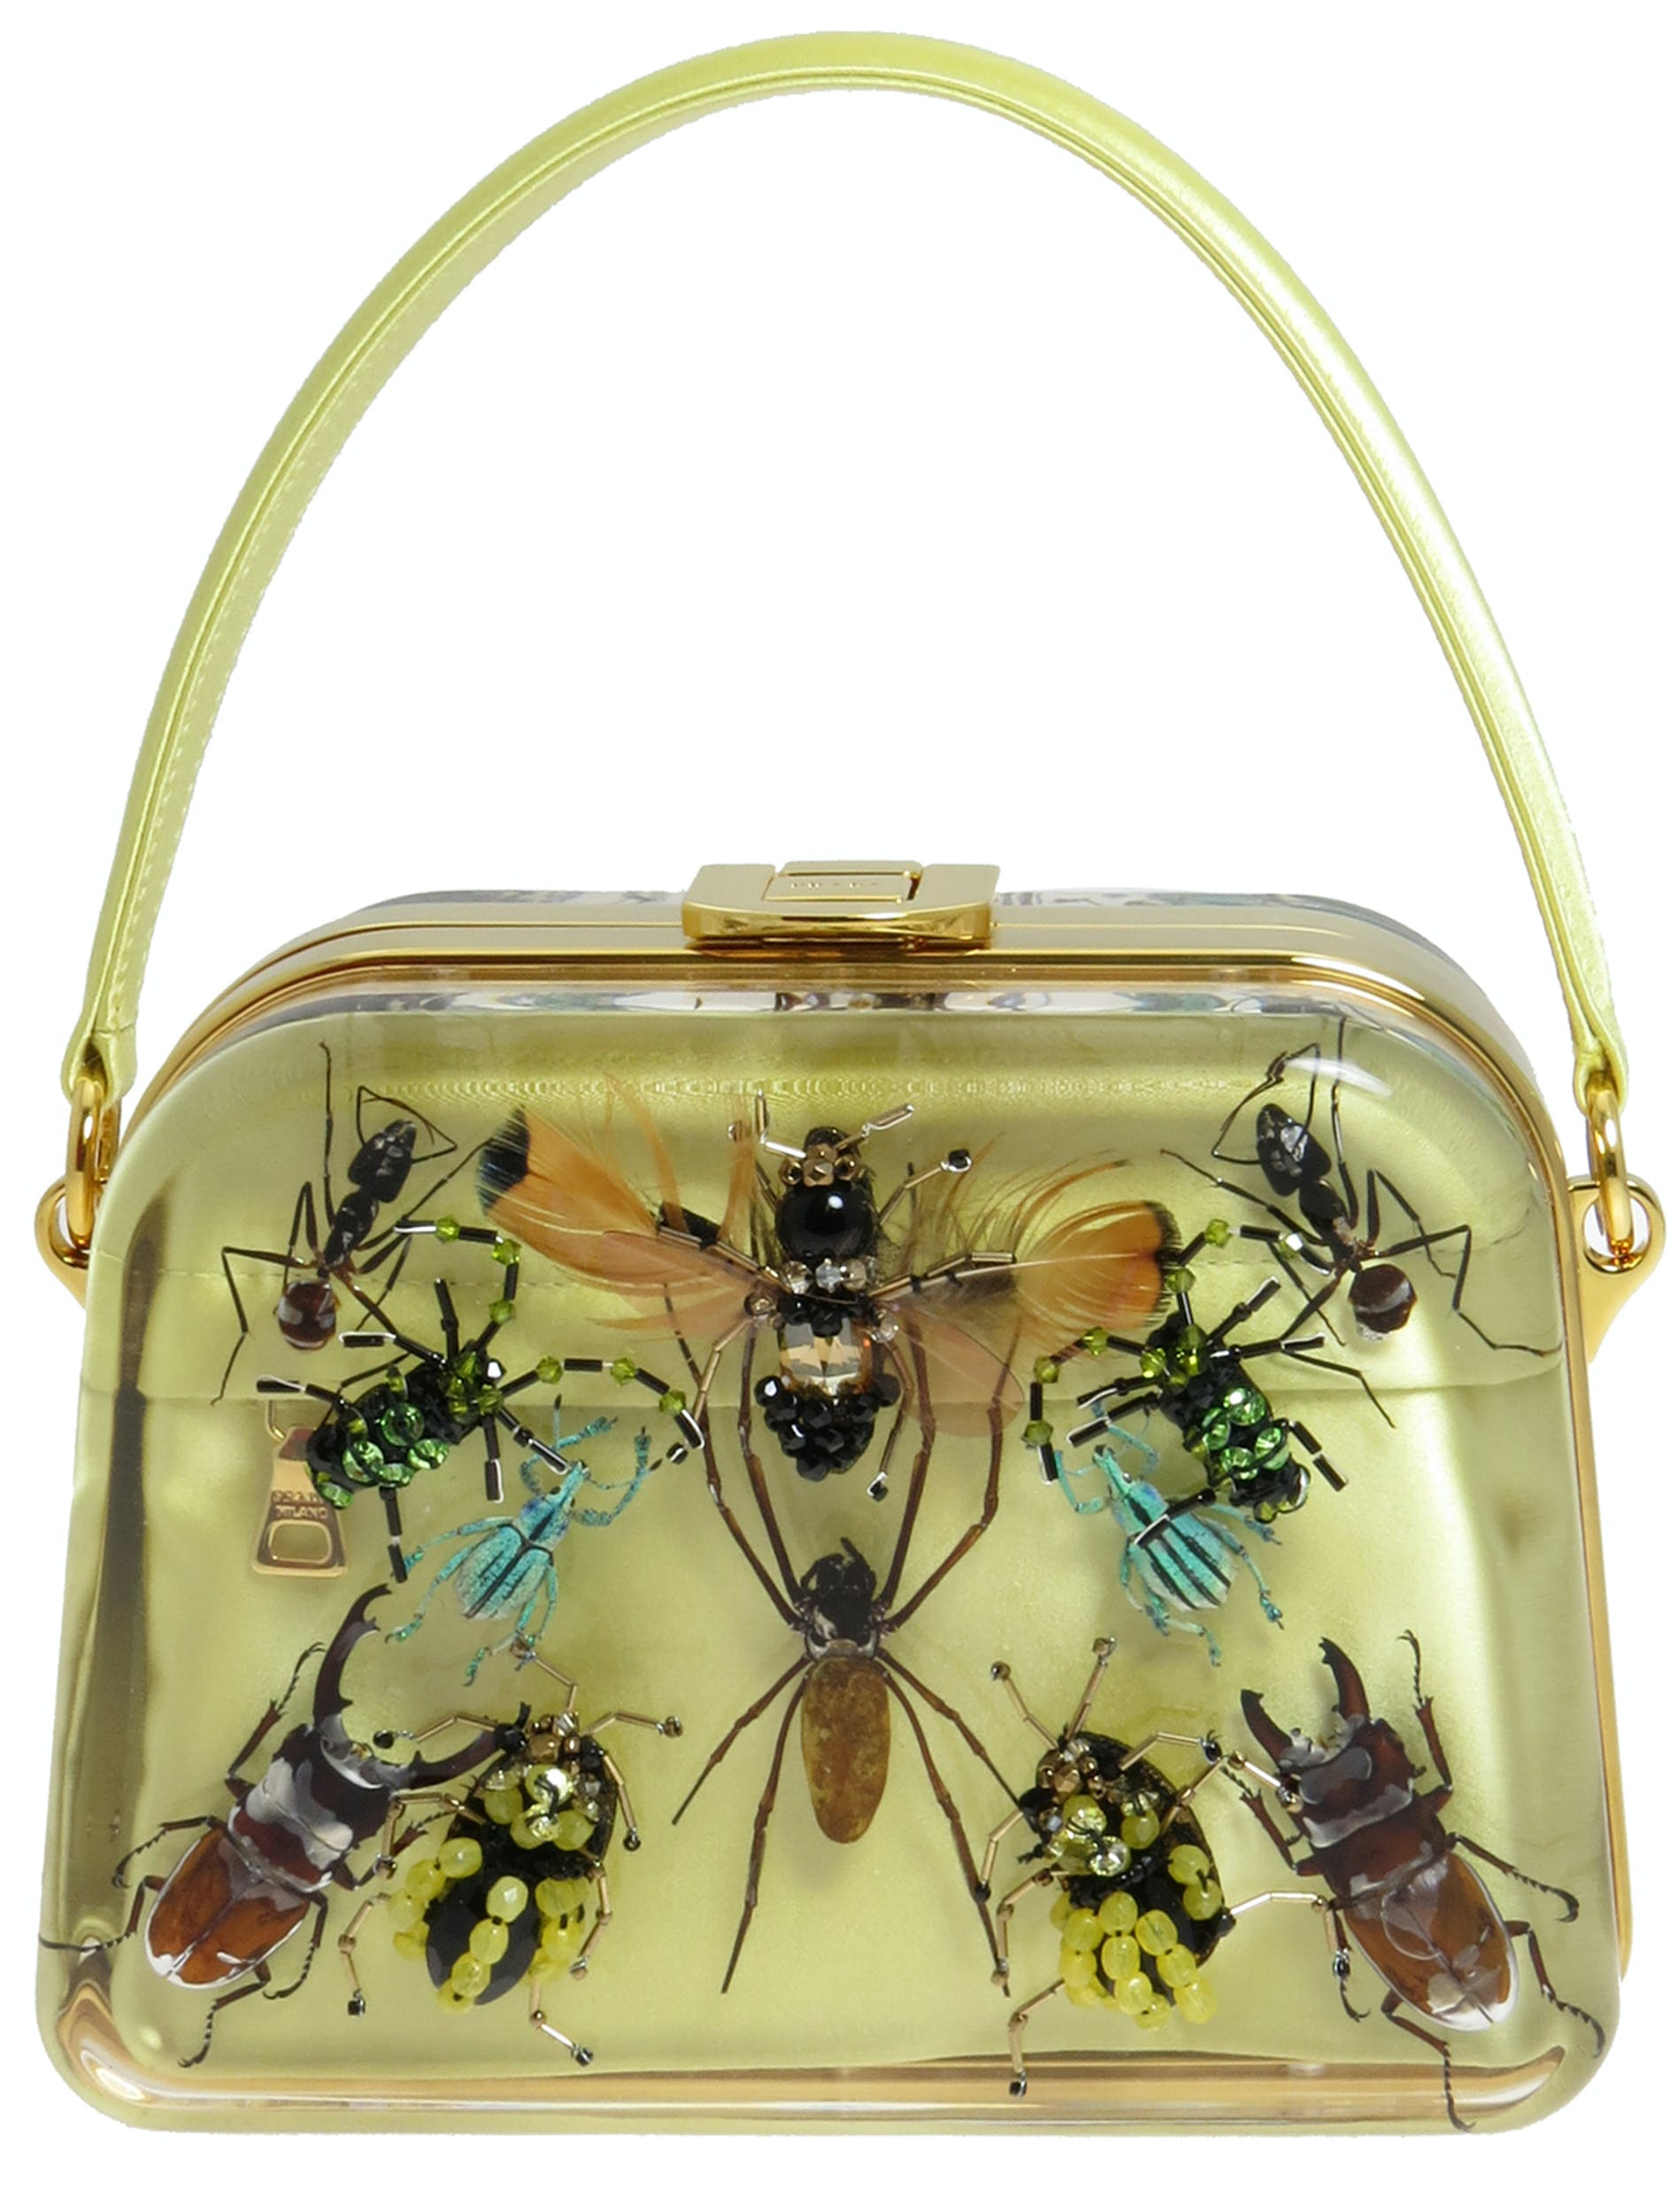 """Animalia Fashion"" Prada Borsa Entomology Collezione privata"